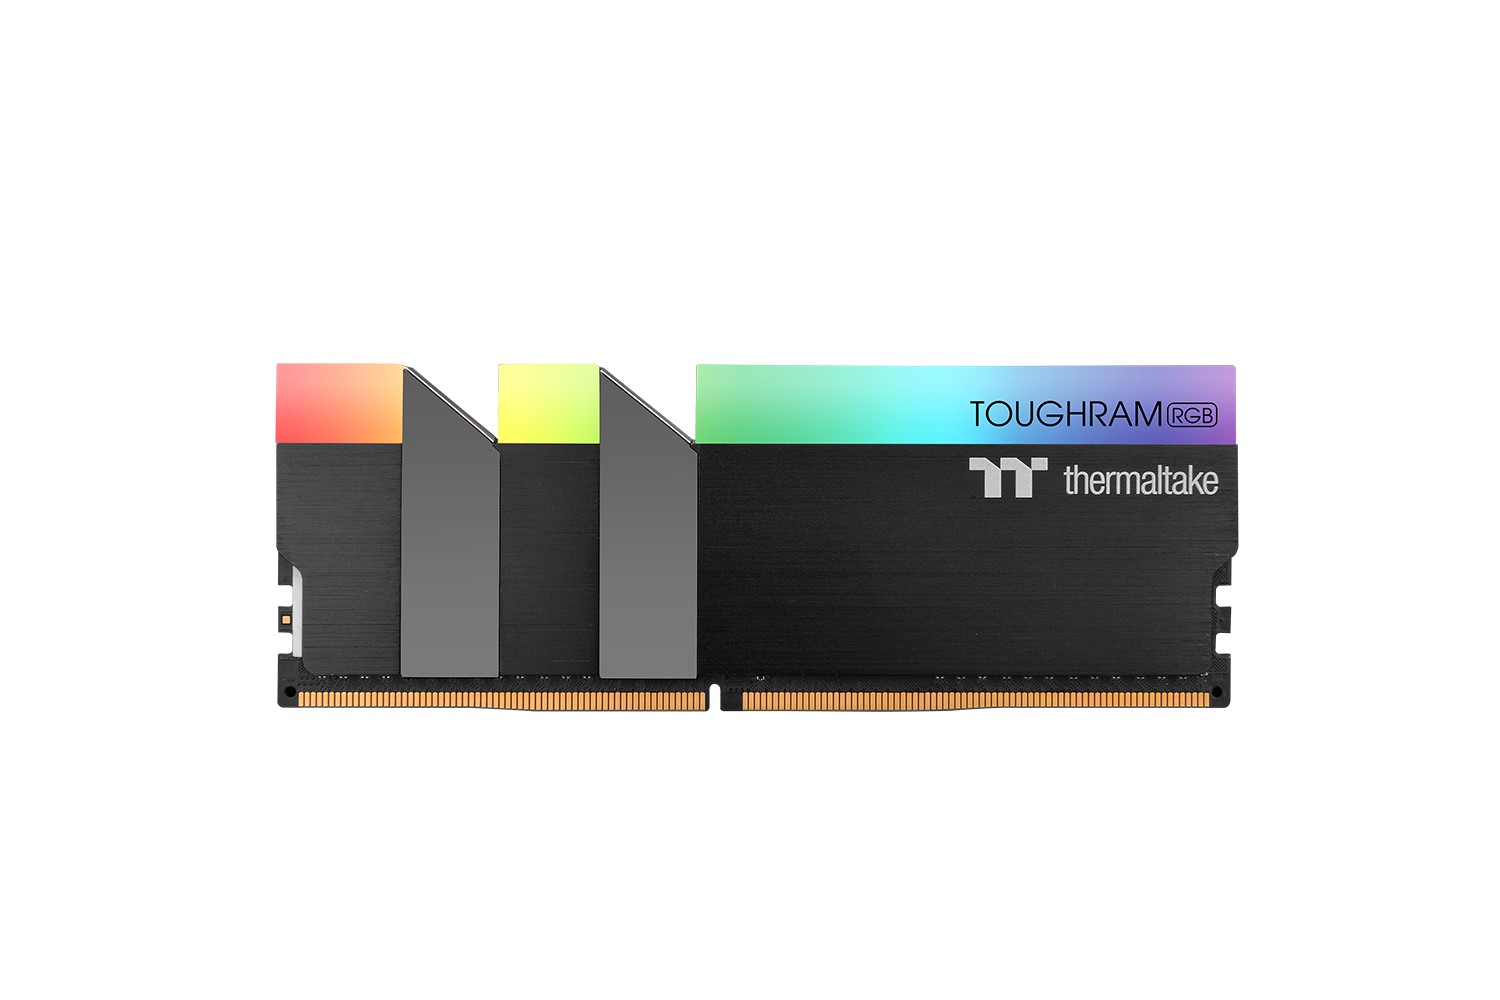 Thermaltake TOUGHRAM RGB DDR4 Memory 2